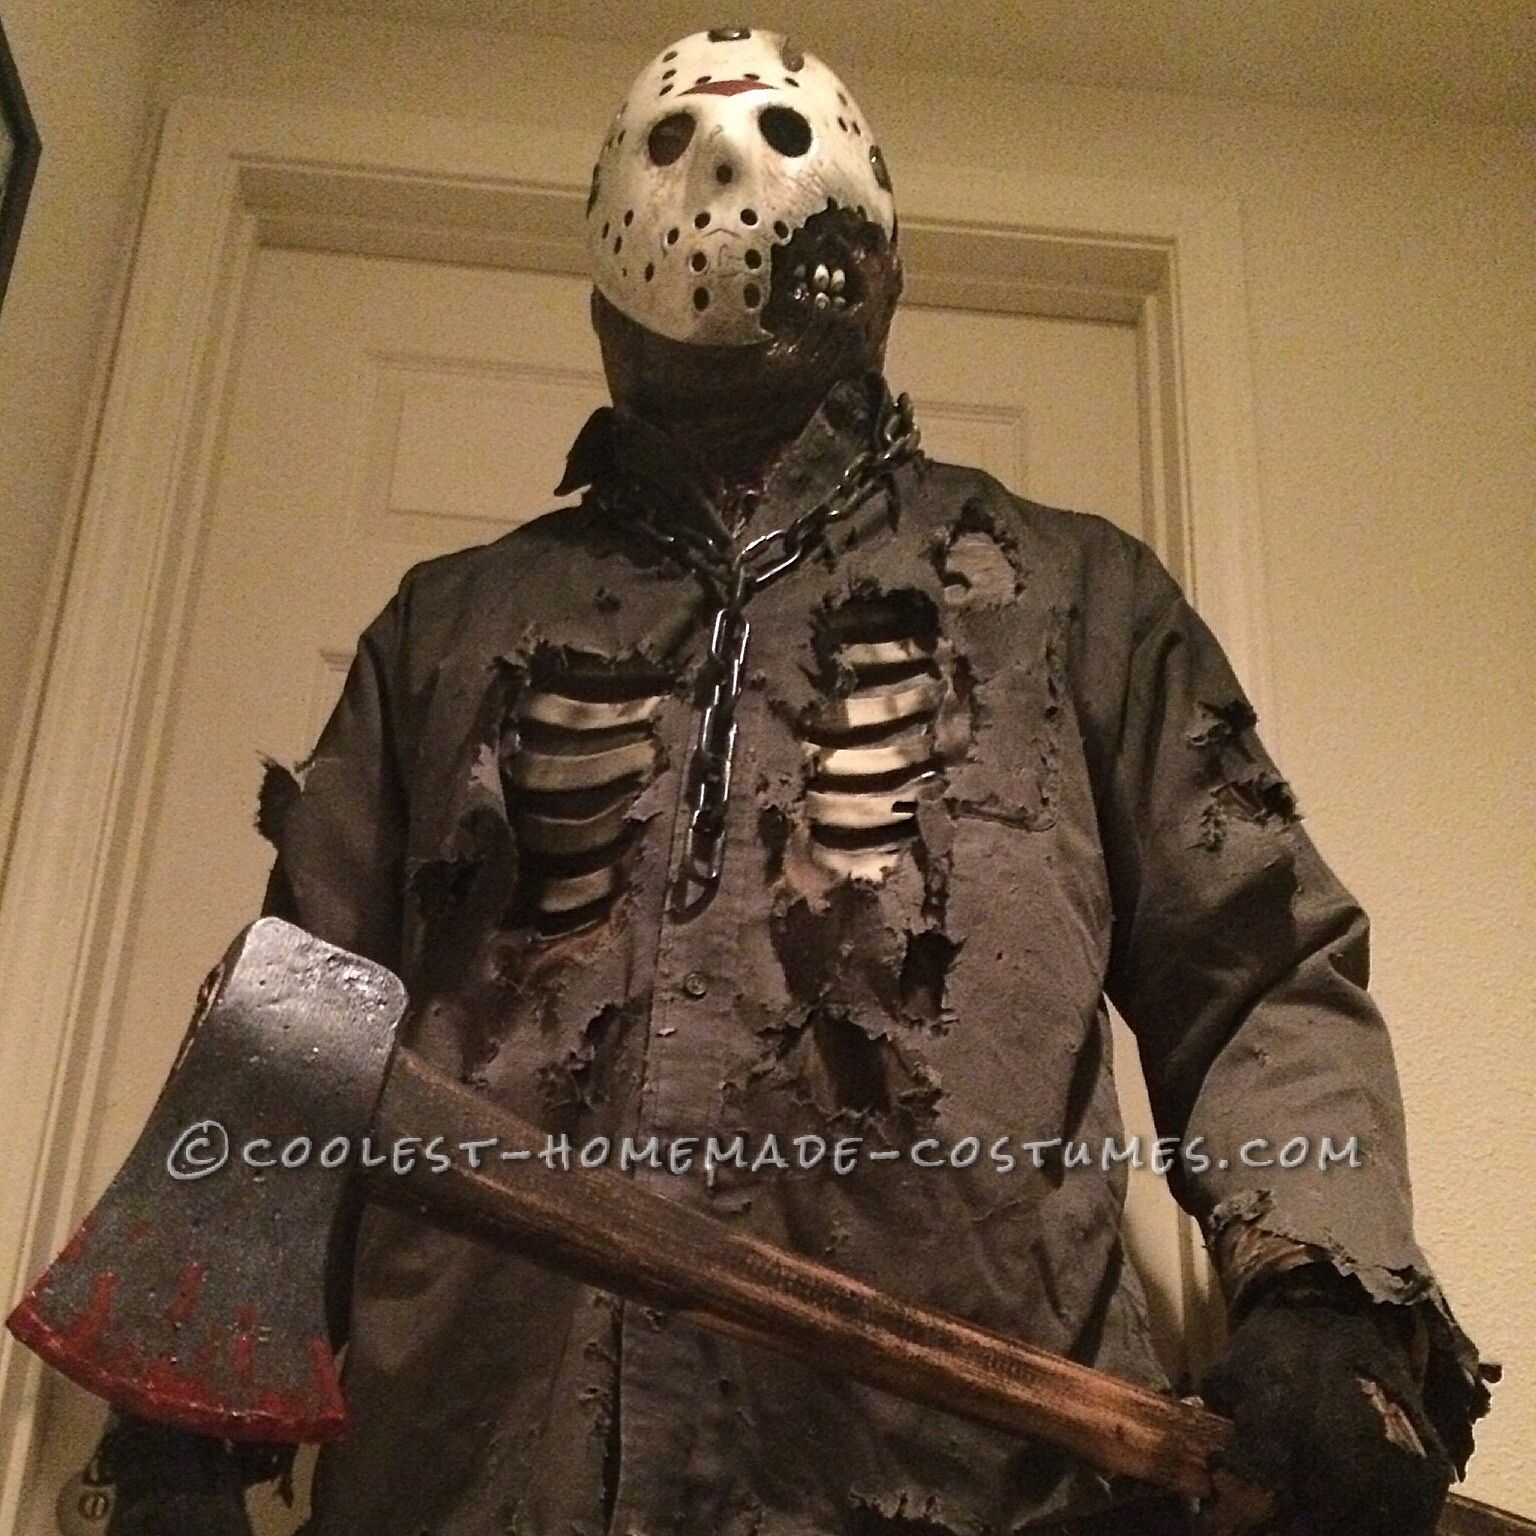 Friday the 13th part 7 costume build halloween costume contest friday the 13th part 7 costume build coolest halloween costume contest solutioingenieria Images